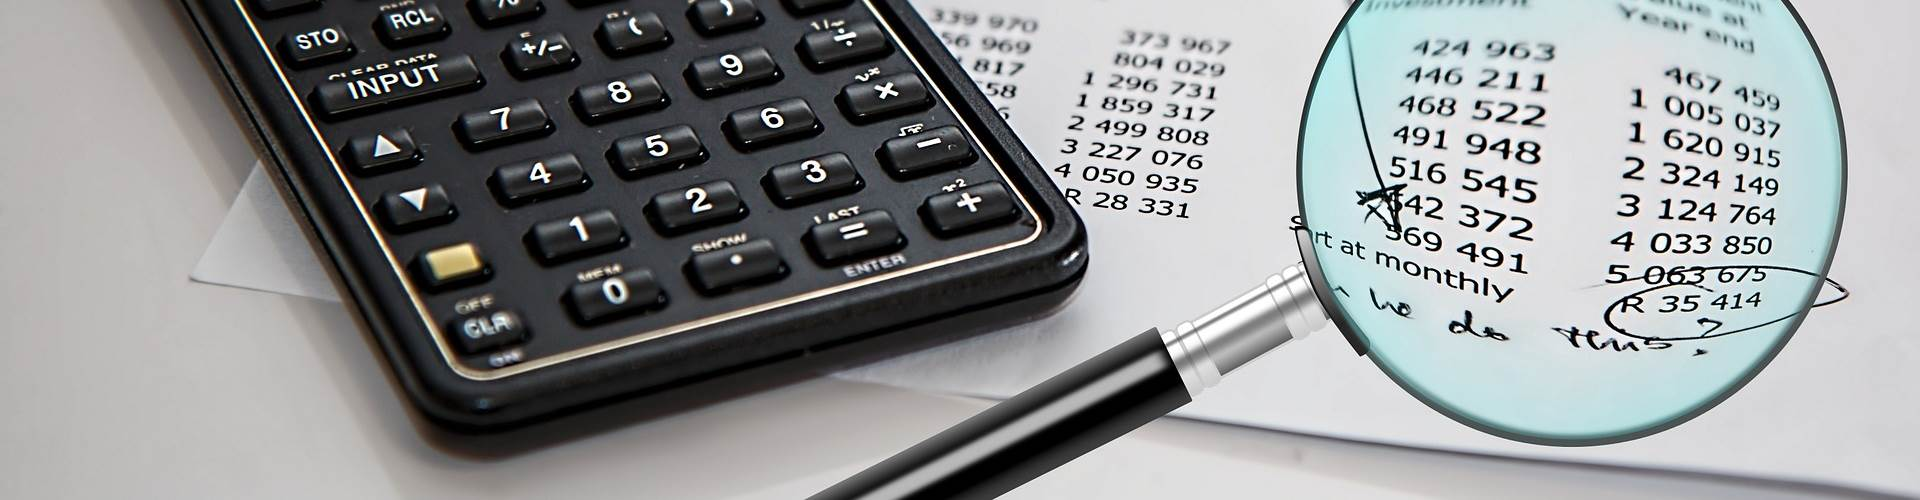 Analyzing Numbers - Bay Forensic Consulting and Investigations